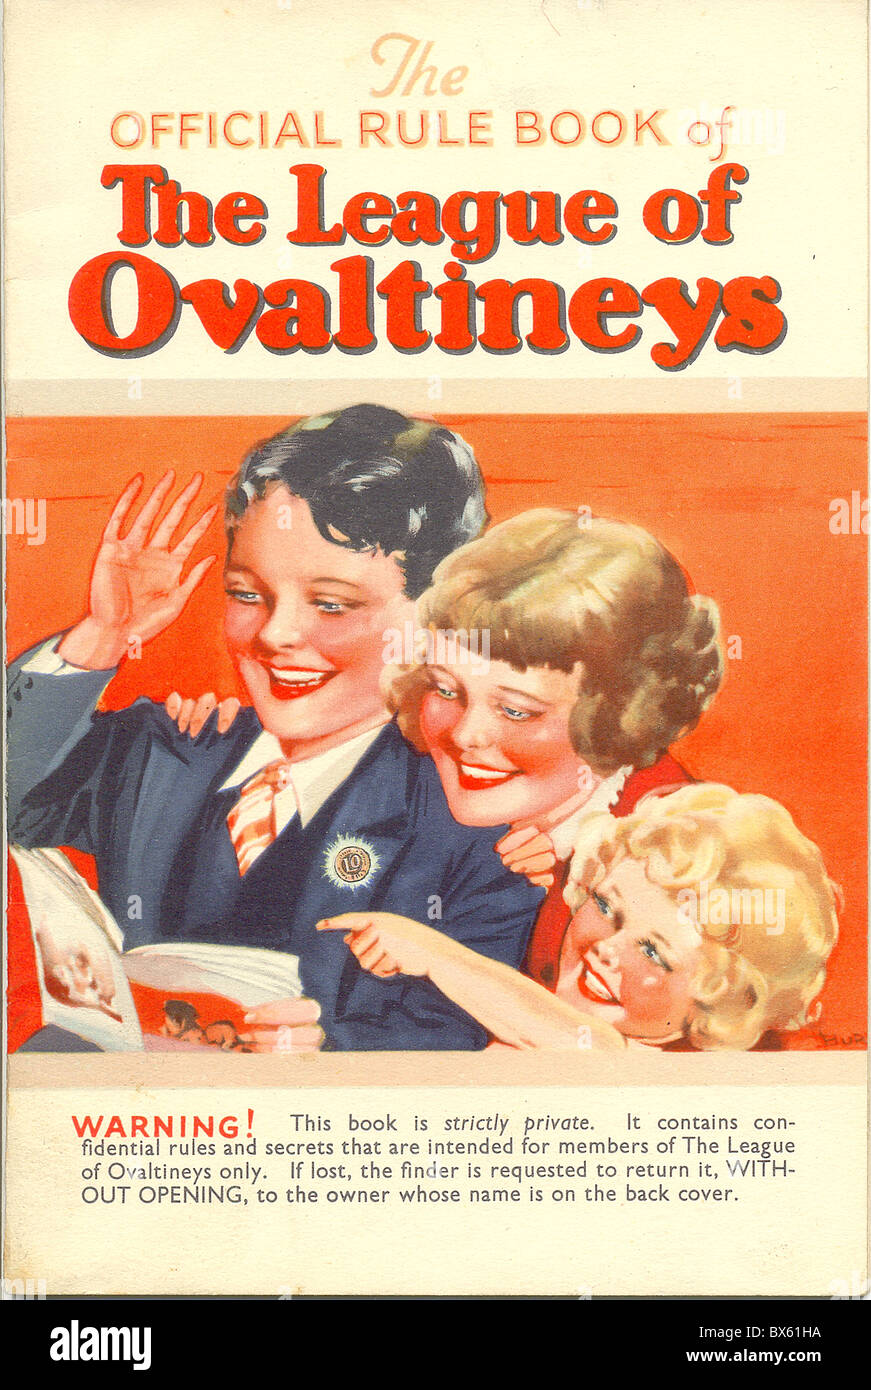 Cover of The official Rule Book of The League of Ovaltineys - Stock Image